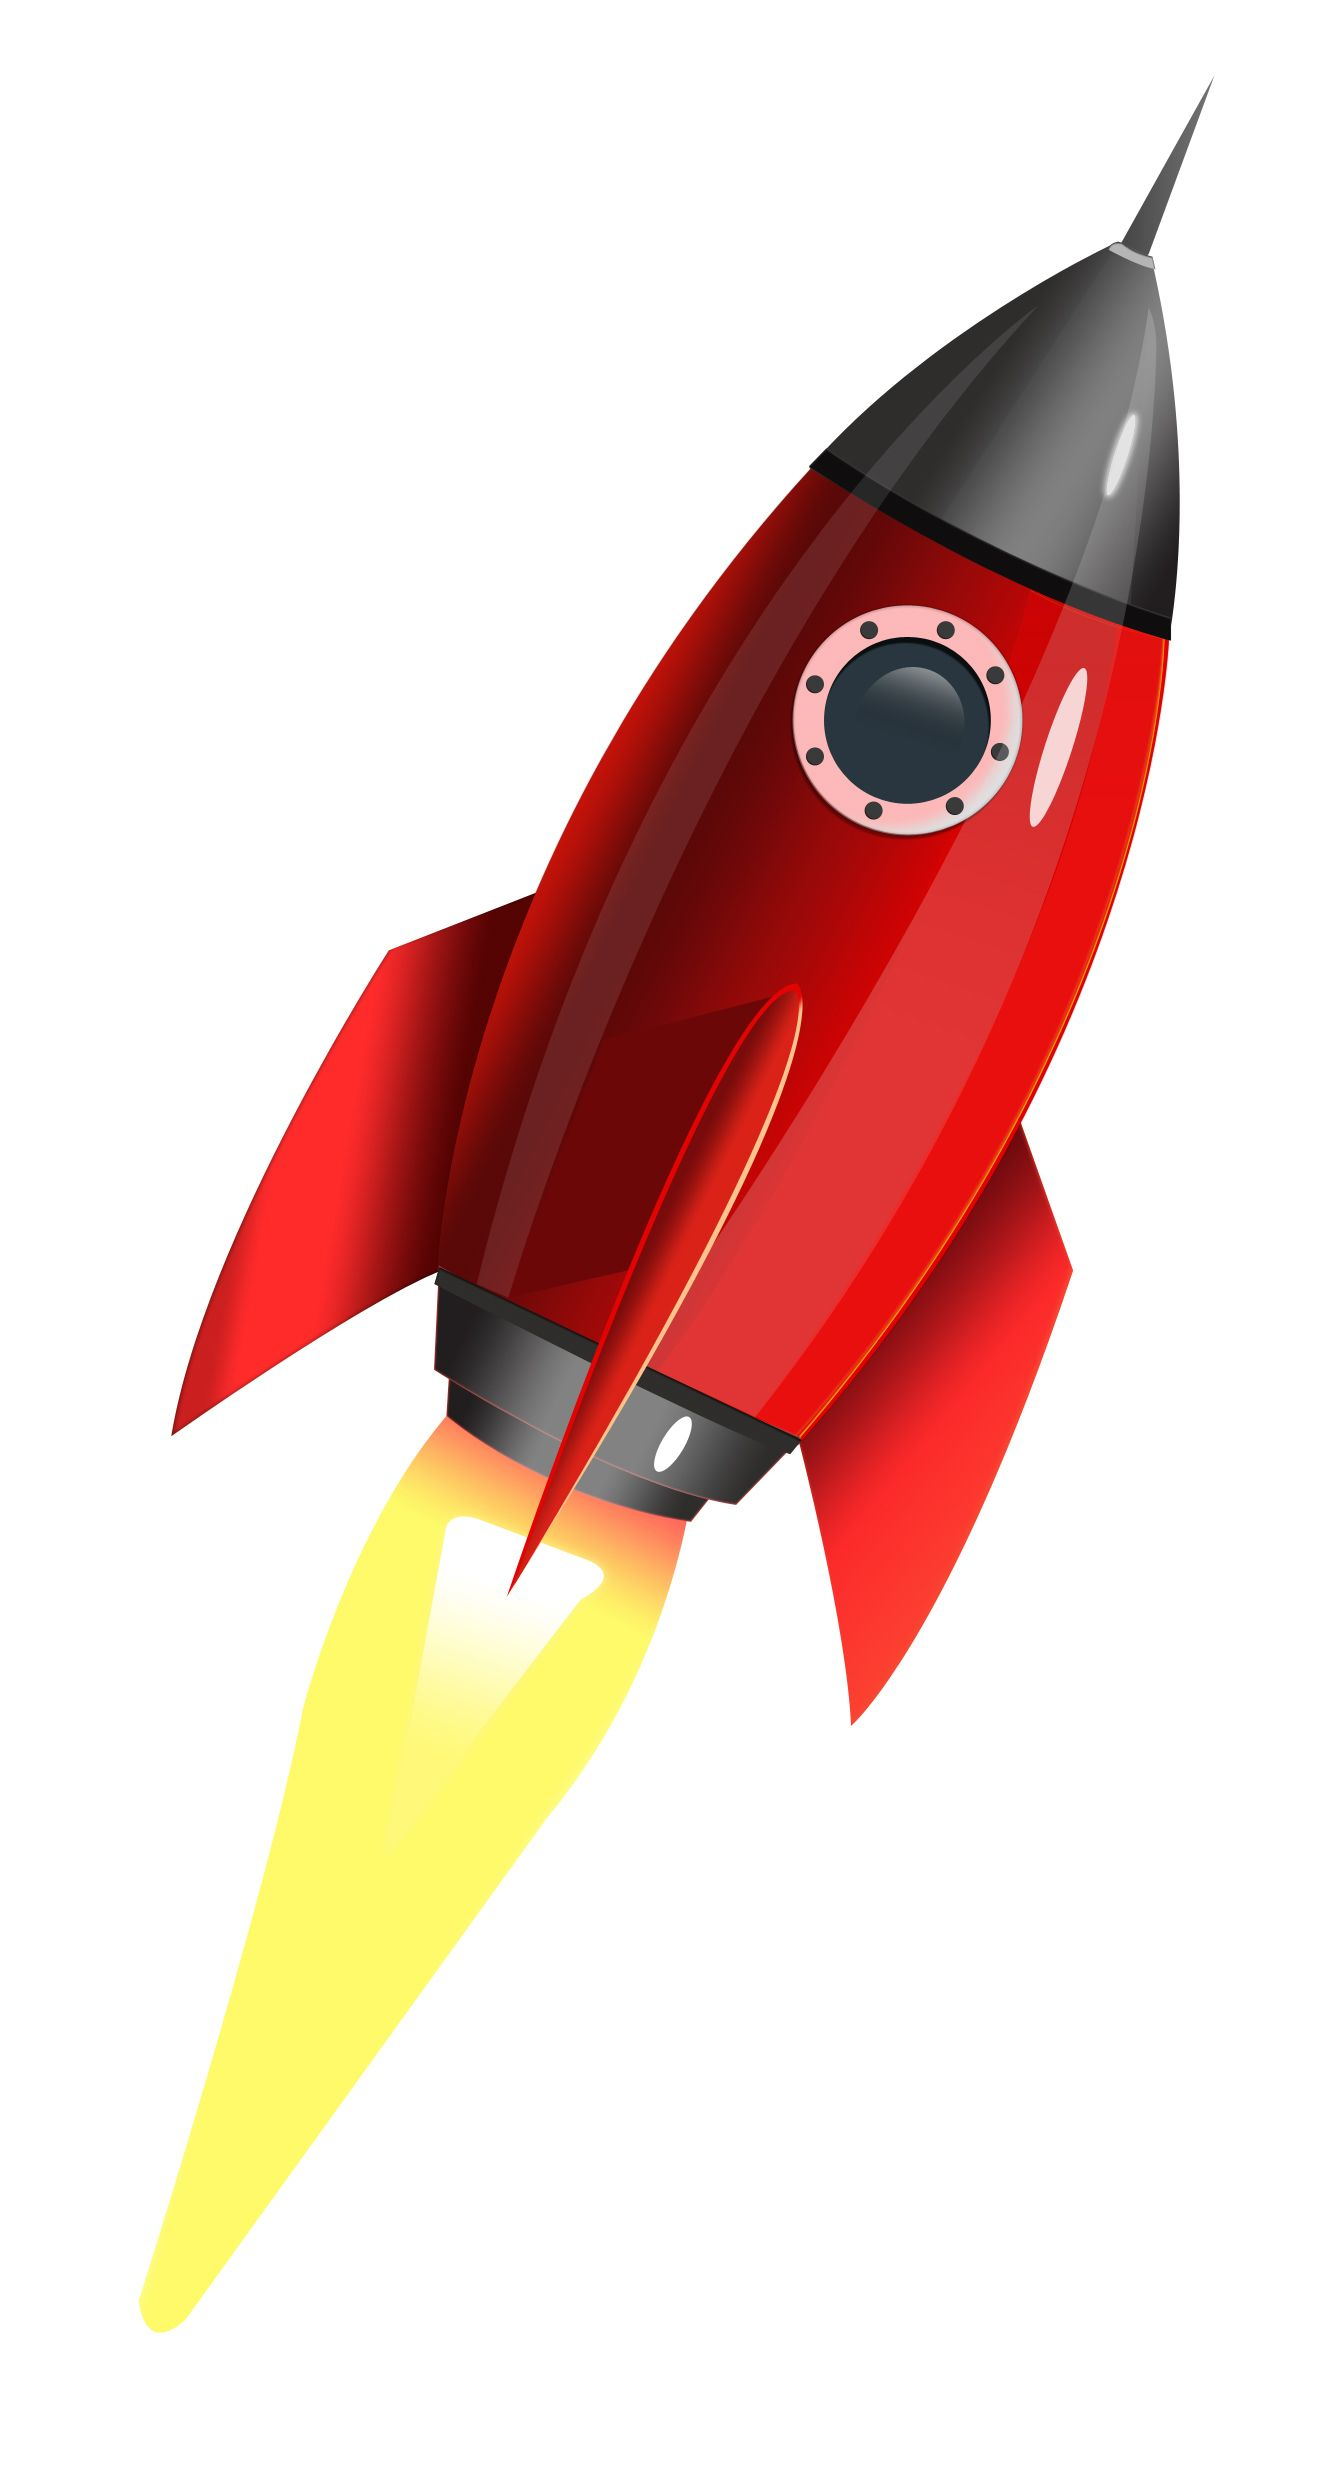 Vintage/Retro/Classic Space-Age Rocket Art | Look into the ...